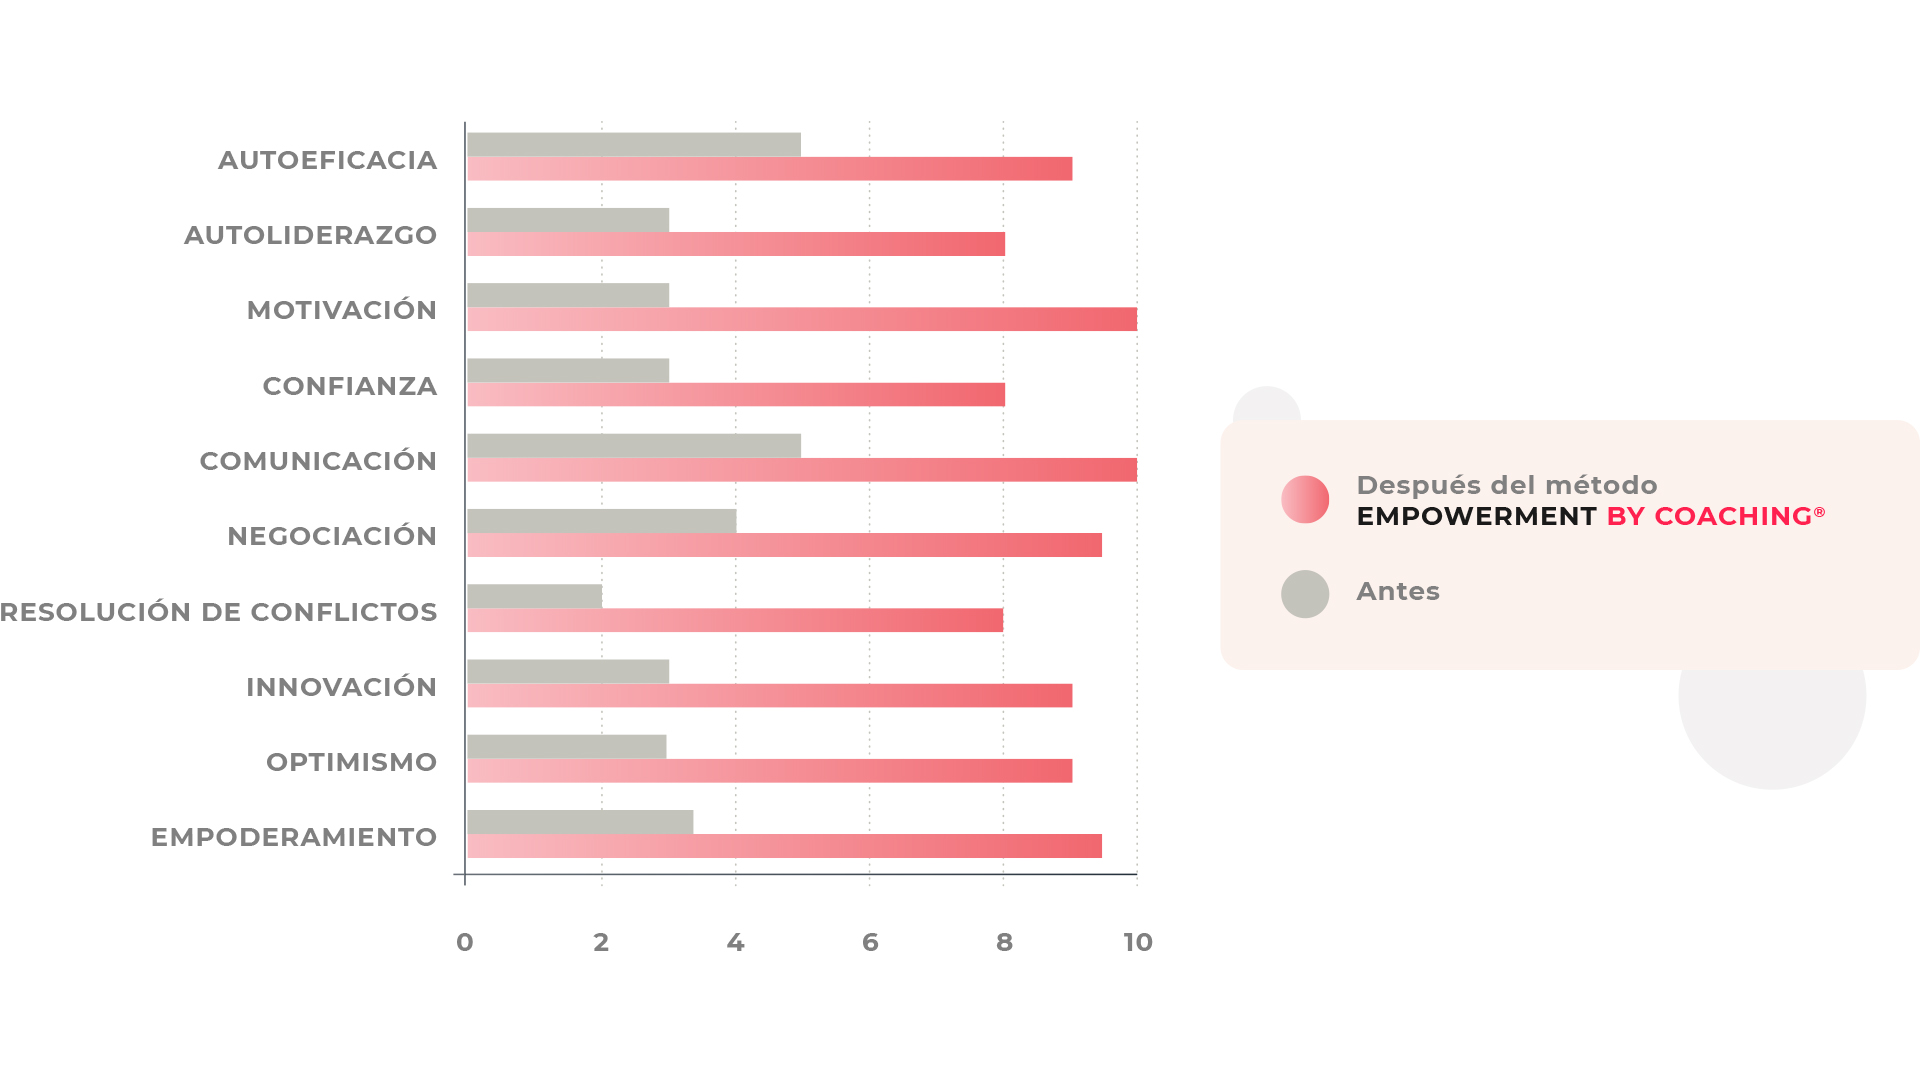 Resultados Empowerment by Coaching